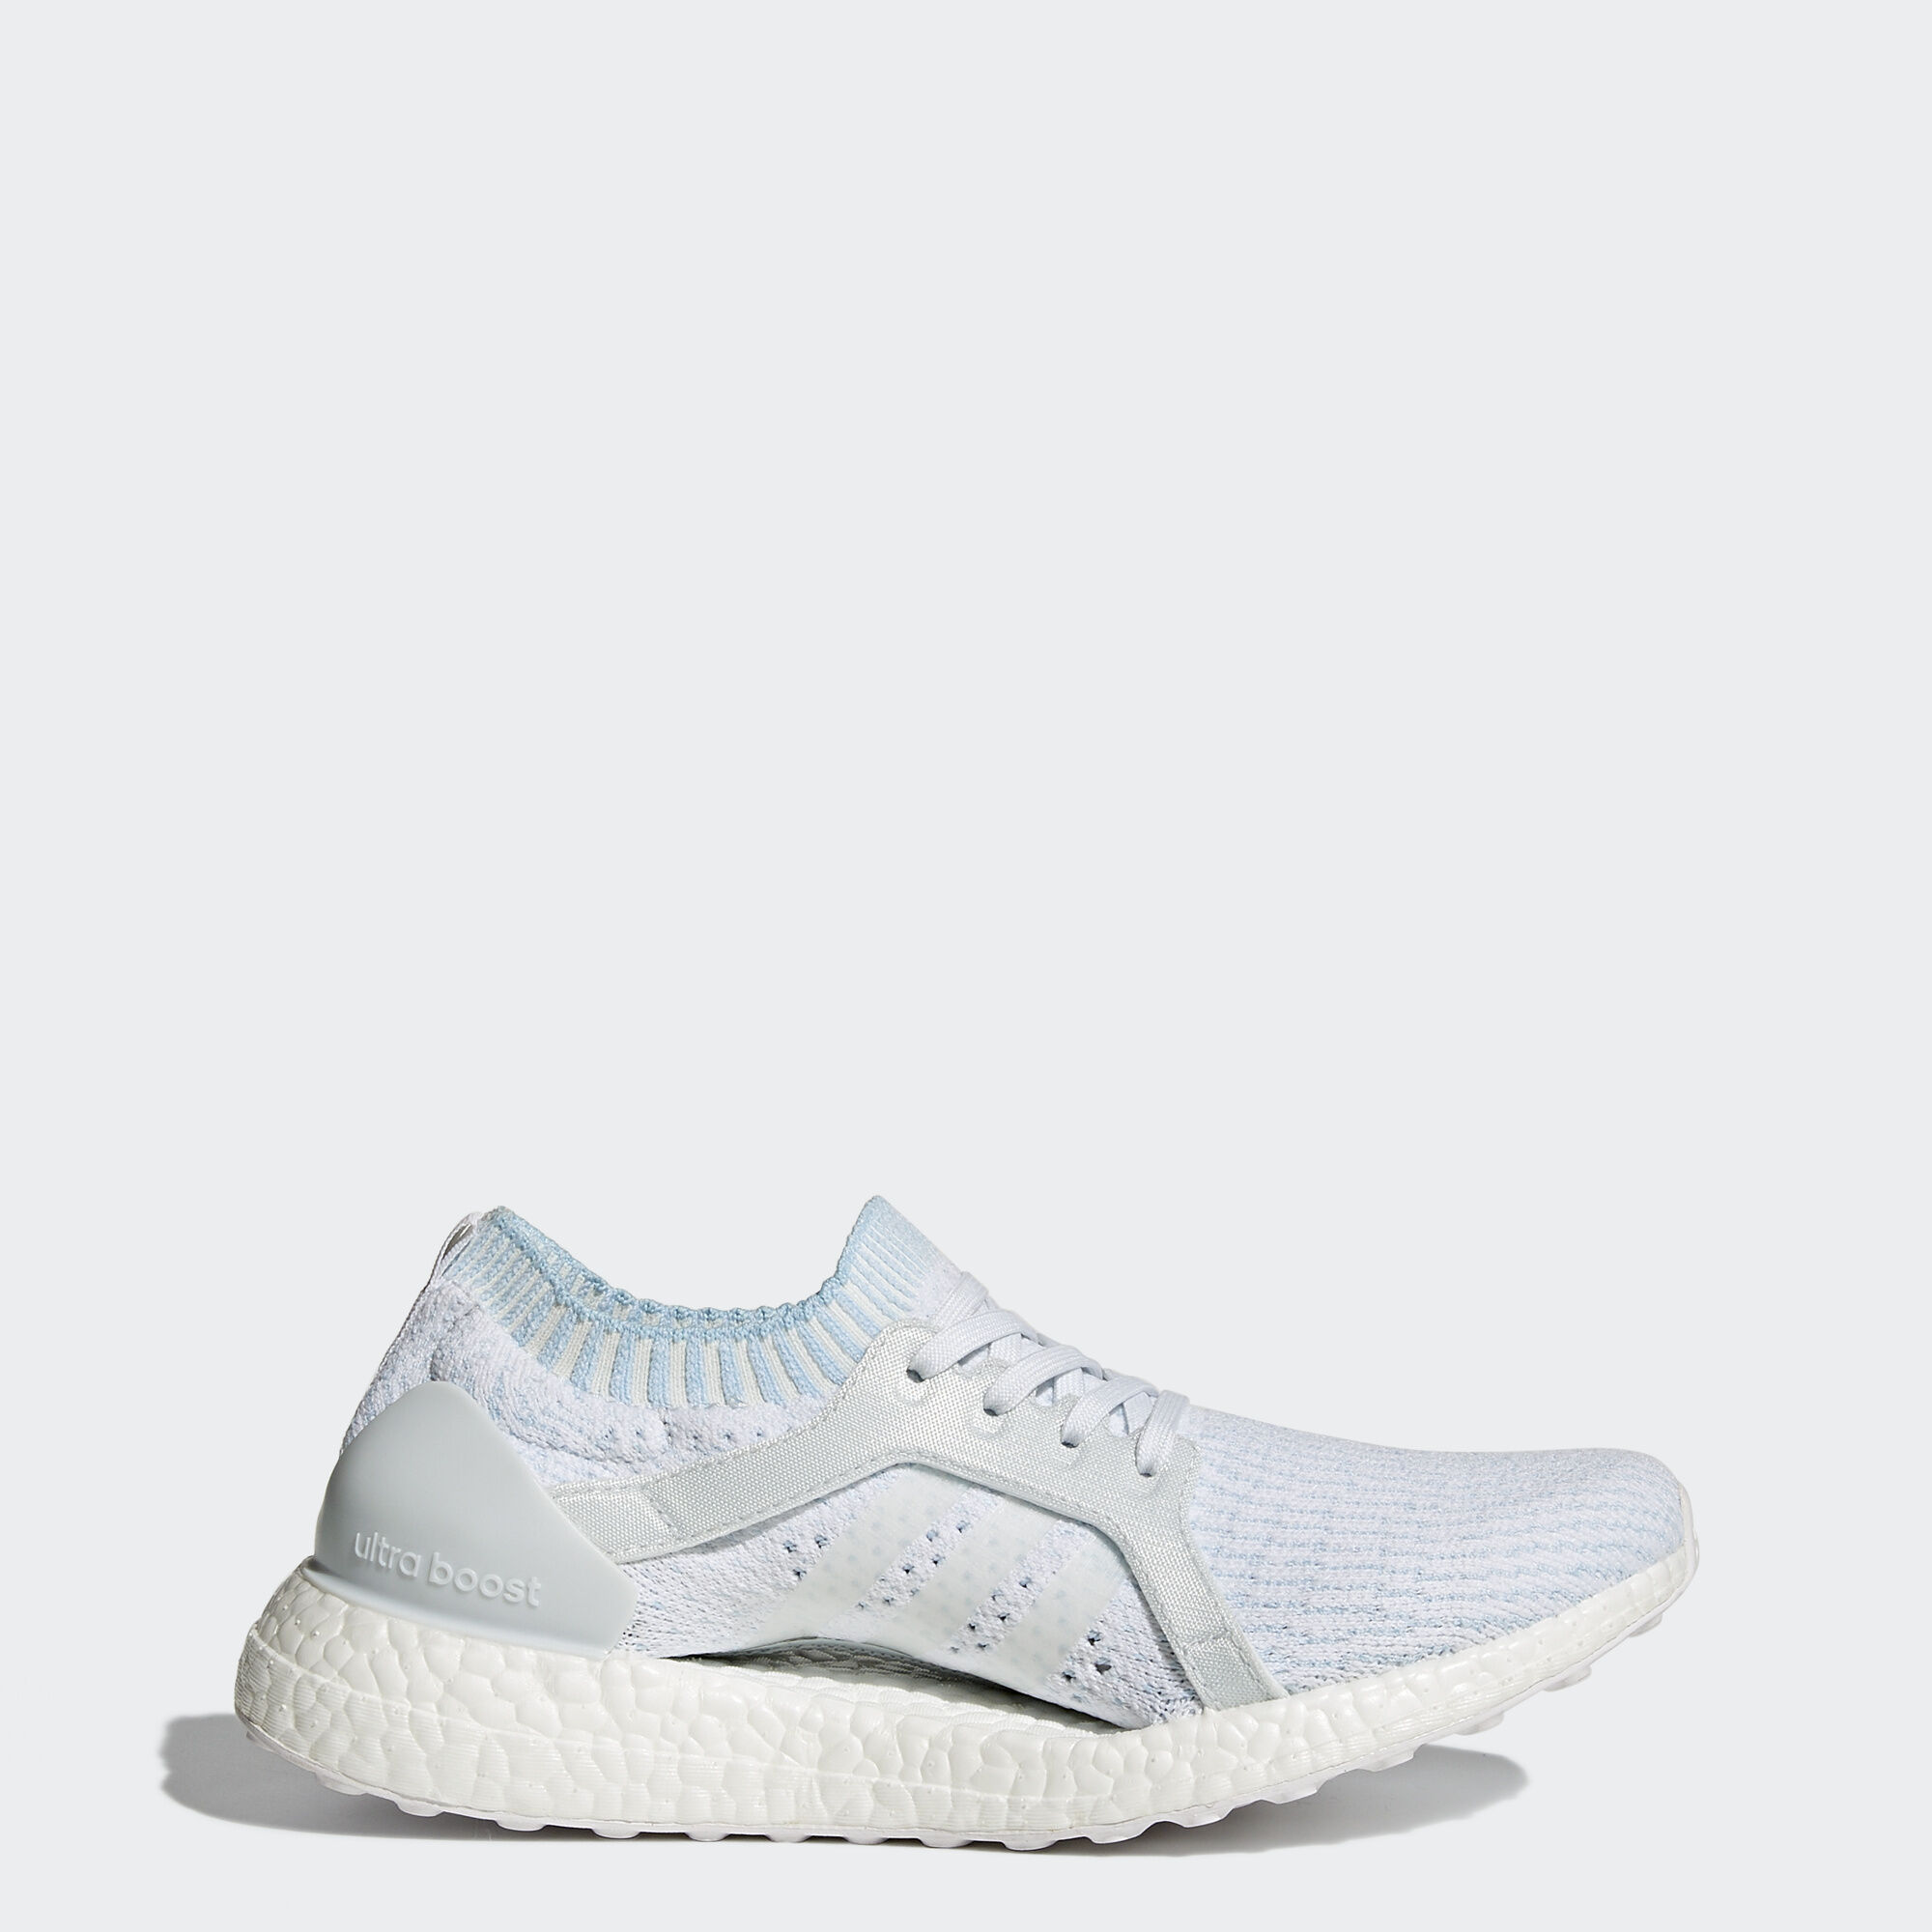 online retailer 9e935 c4c66 ... adidas - Ultraboost X Parley Shoes Icey Blue   Running White   Icey  Blue BY2707 ...